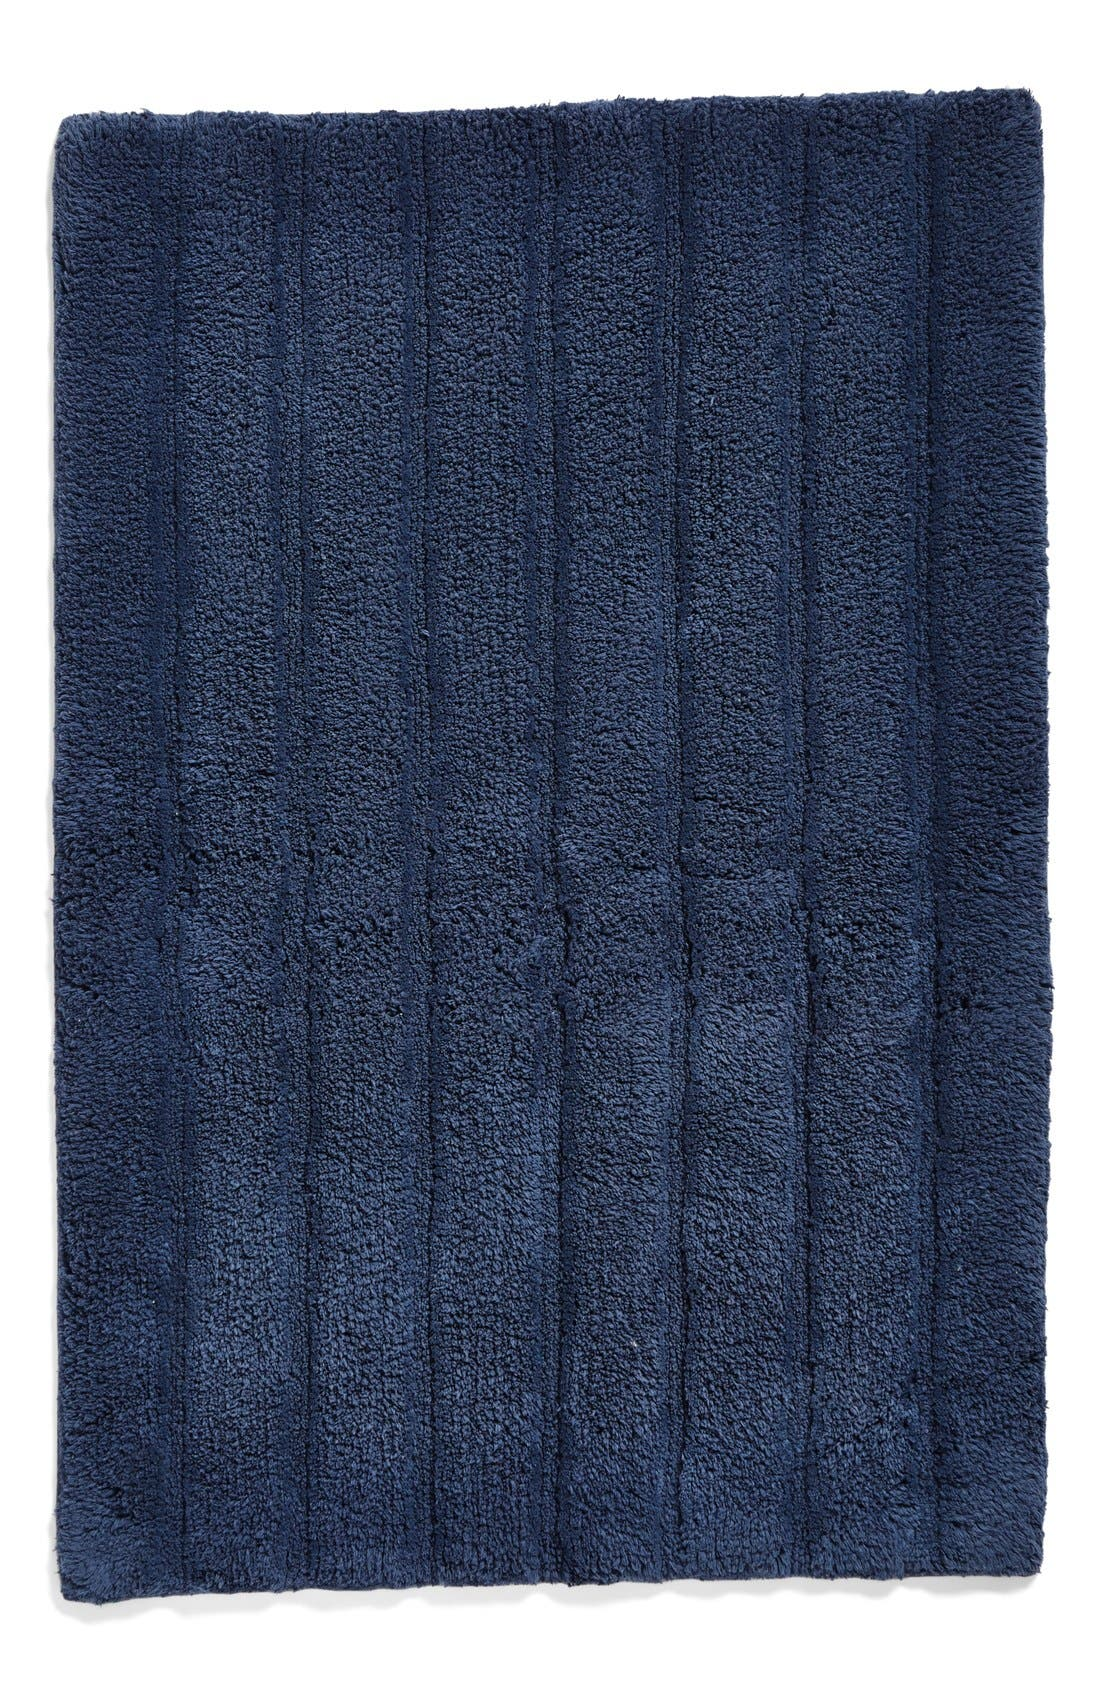 Ribbed Velour Bath Rug,                             Main thumbnail 6, color,